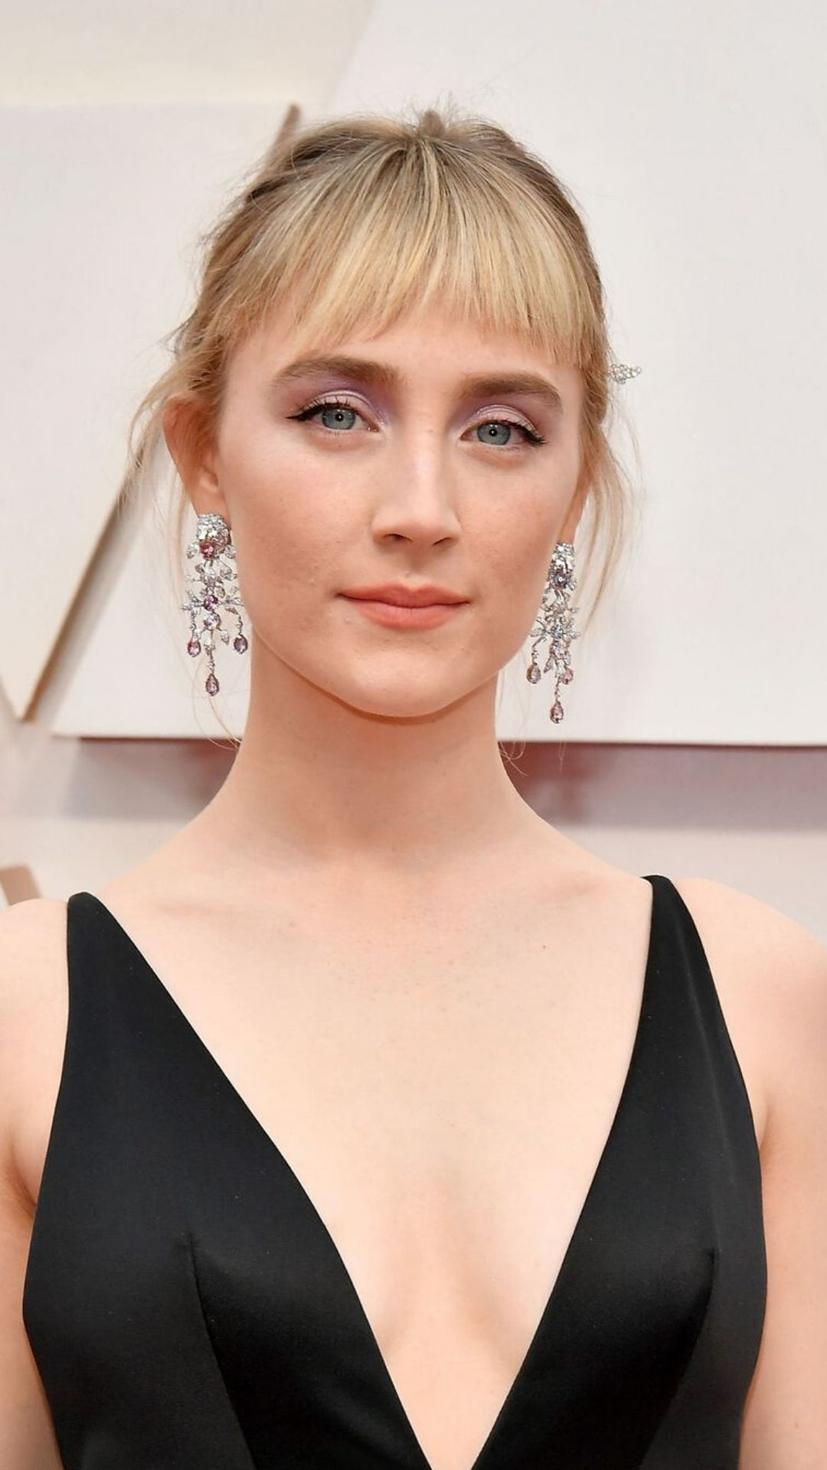 It would be hard to rock a fringe cut like that if you aren't Saoirse Ronan. Her elegant makeup adds a dash of royalty to the whole look and it goes without saying that we are definitely in love with the pink glittery shadow that highlights her lovely blue eyes.